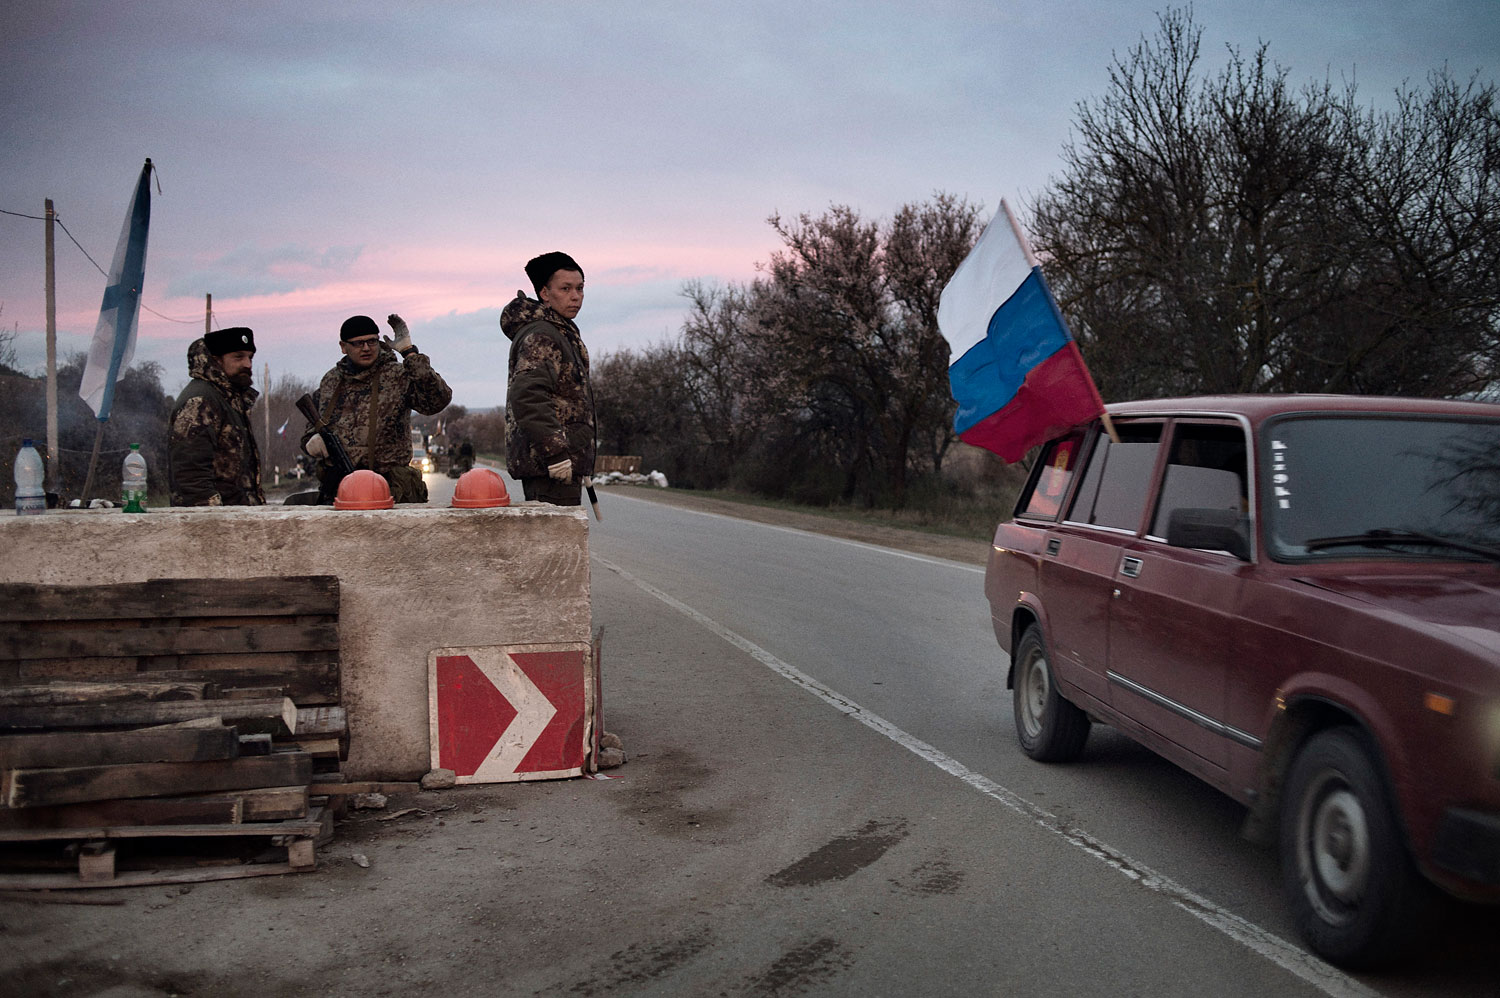 Members of the Cossack paramilitary force in Crimea guard a checkpoint on the highway leading to the city of Sevastopol, home of Russia's Black Sea naval fleet, on March 16, 2014.